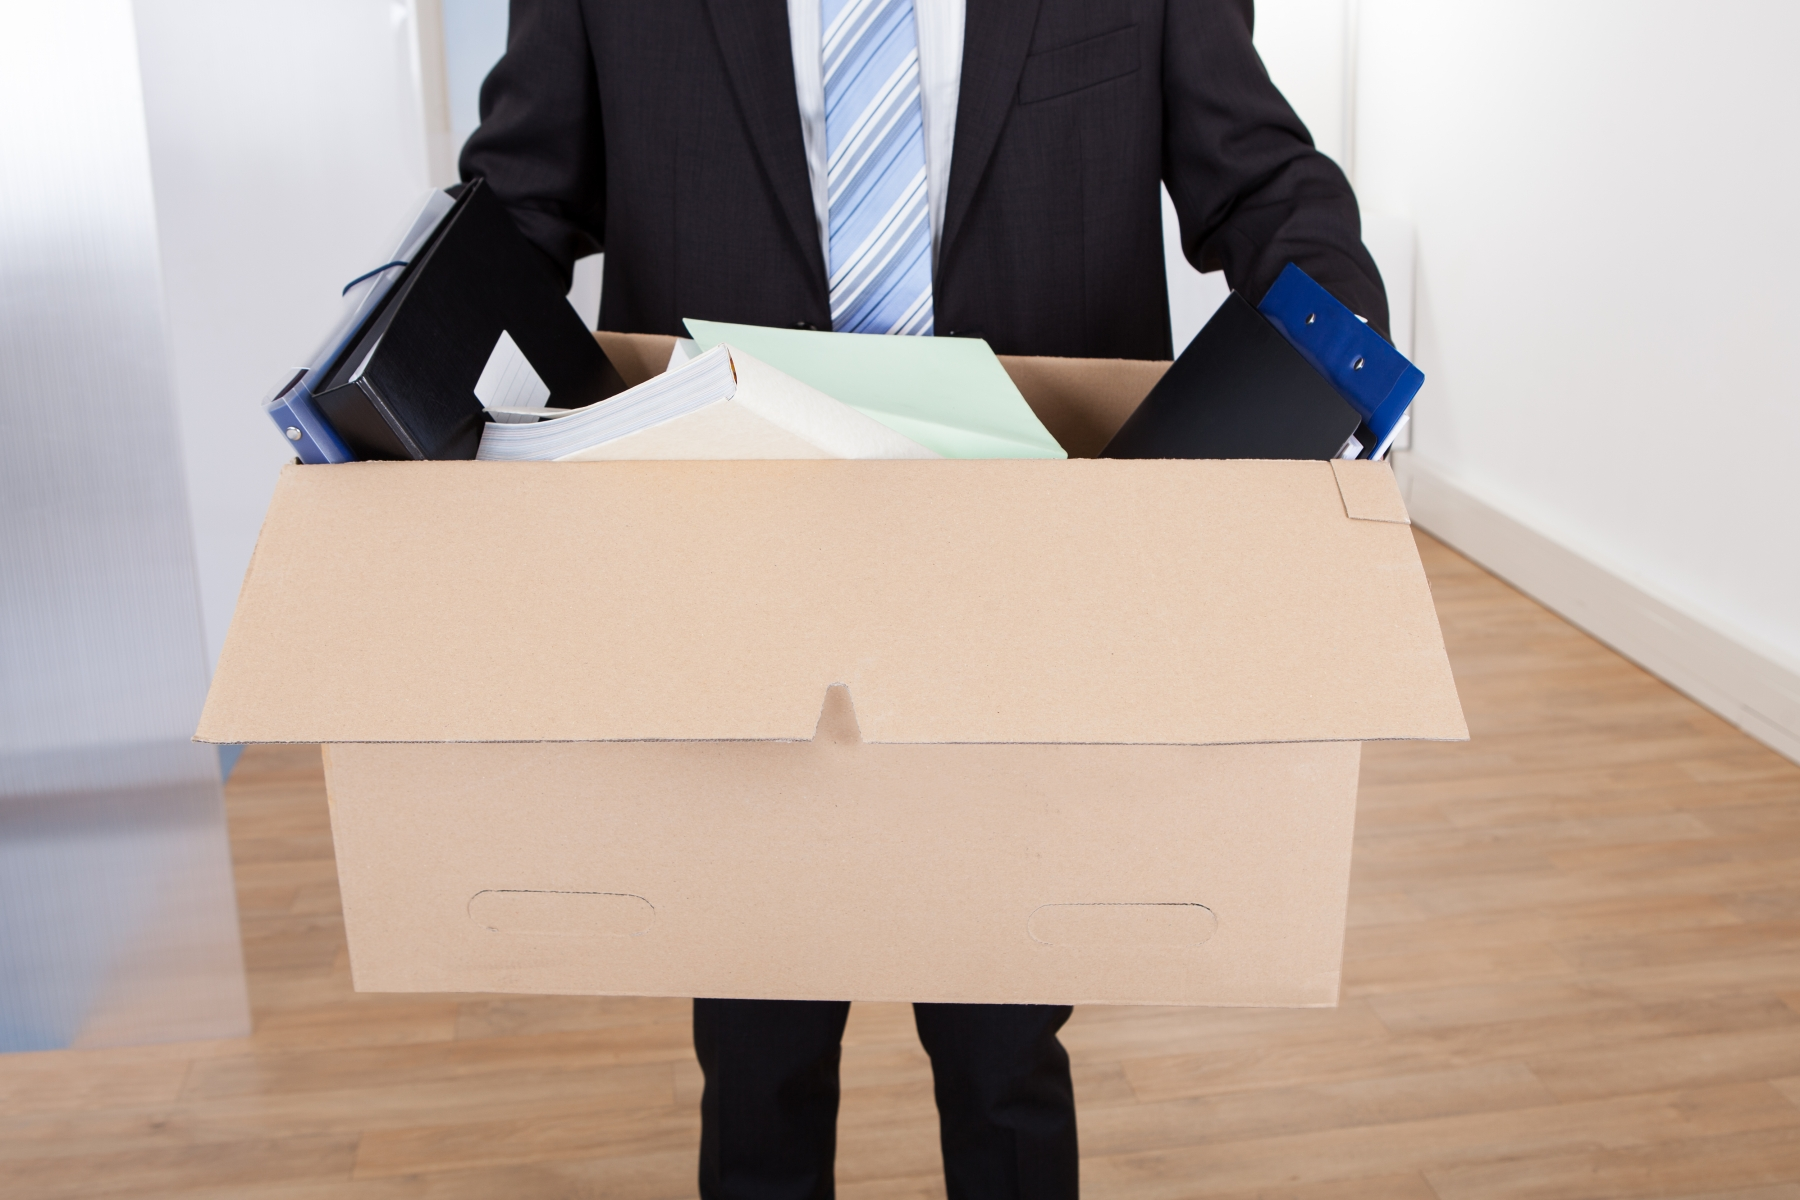 9802512-businessman-moving-out-with-cardboard-box.jpg